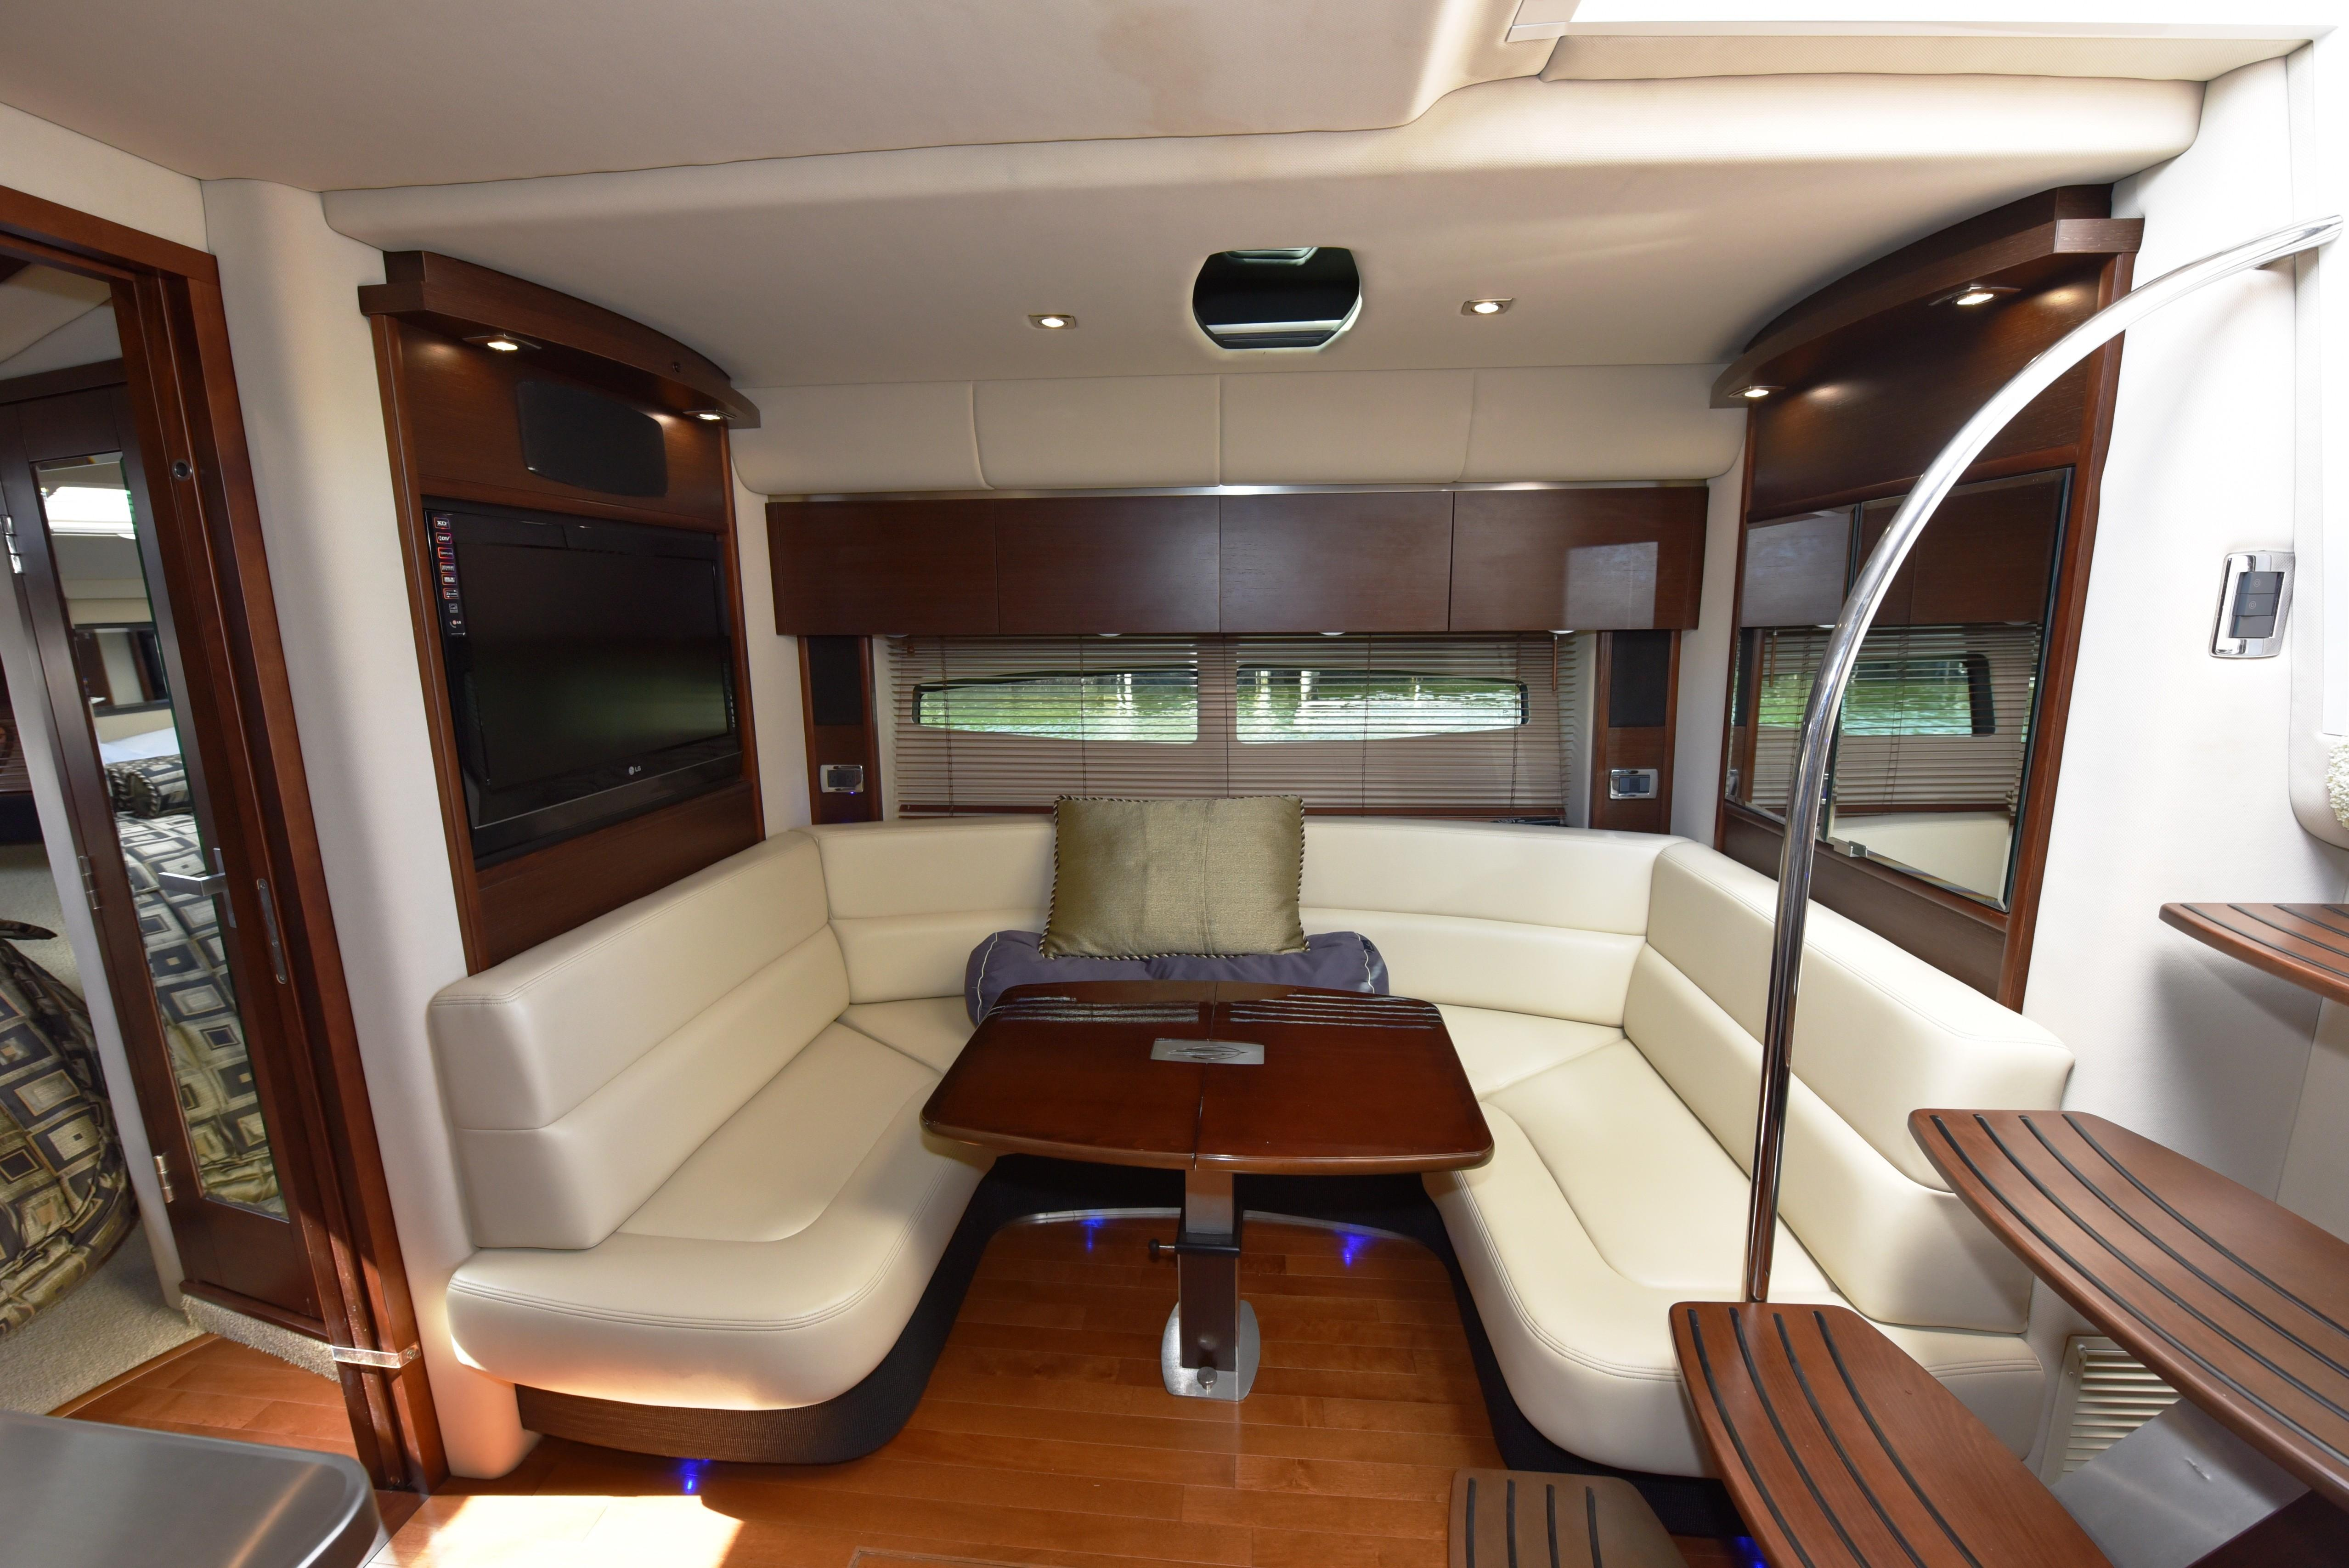 2010 Chaparral 400 Premier - Salon